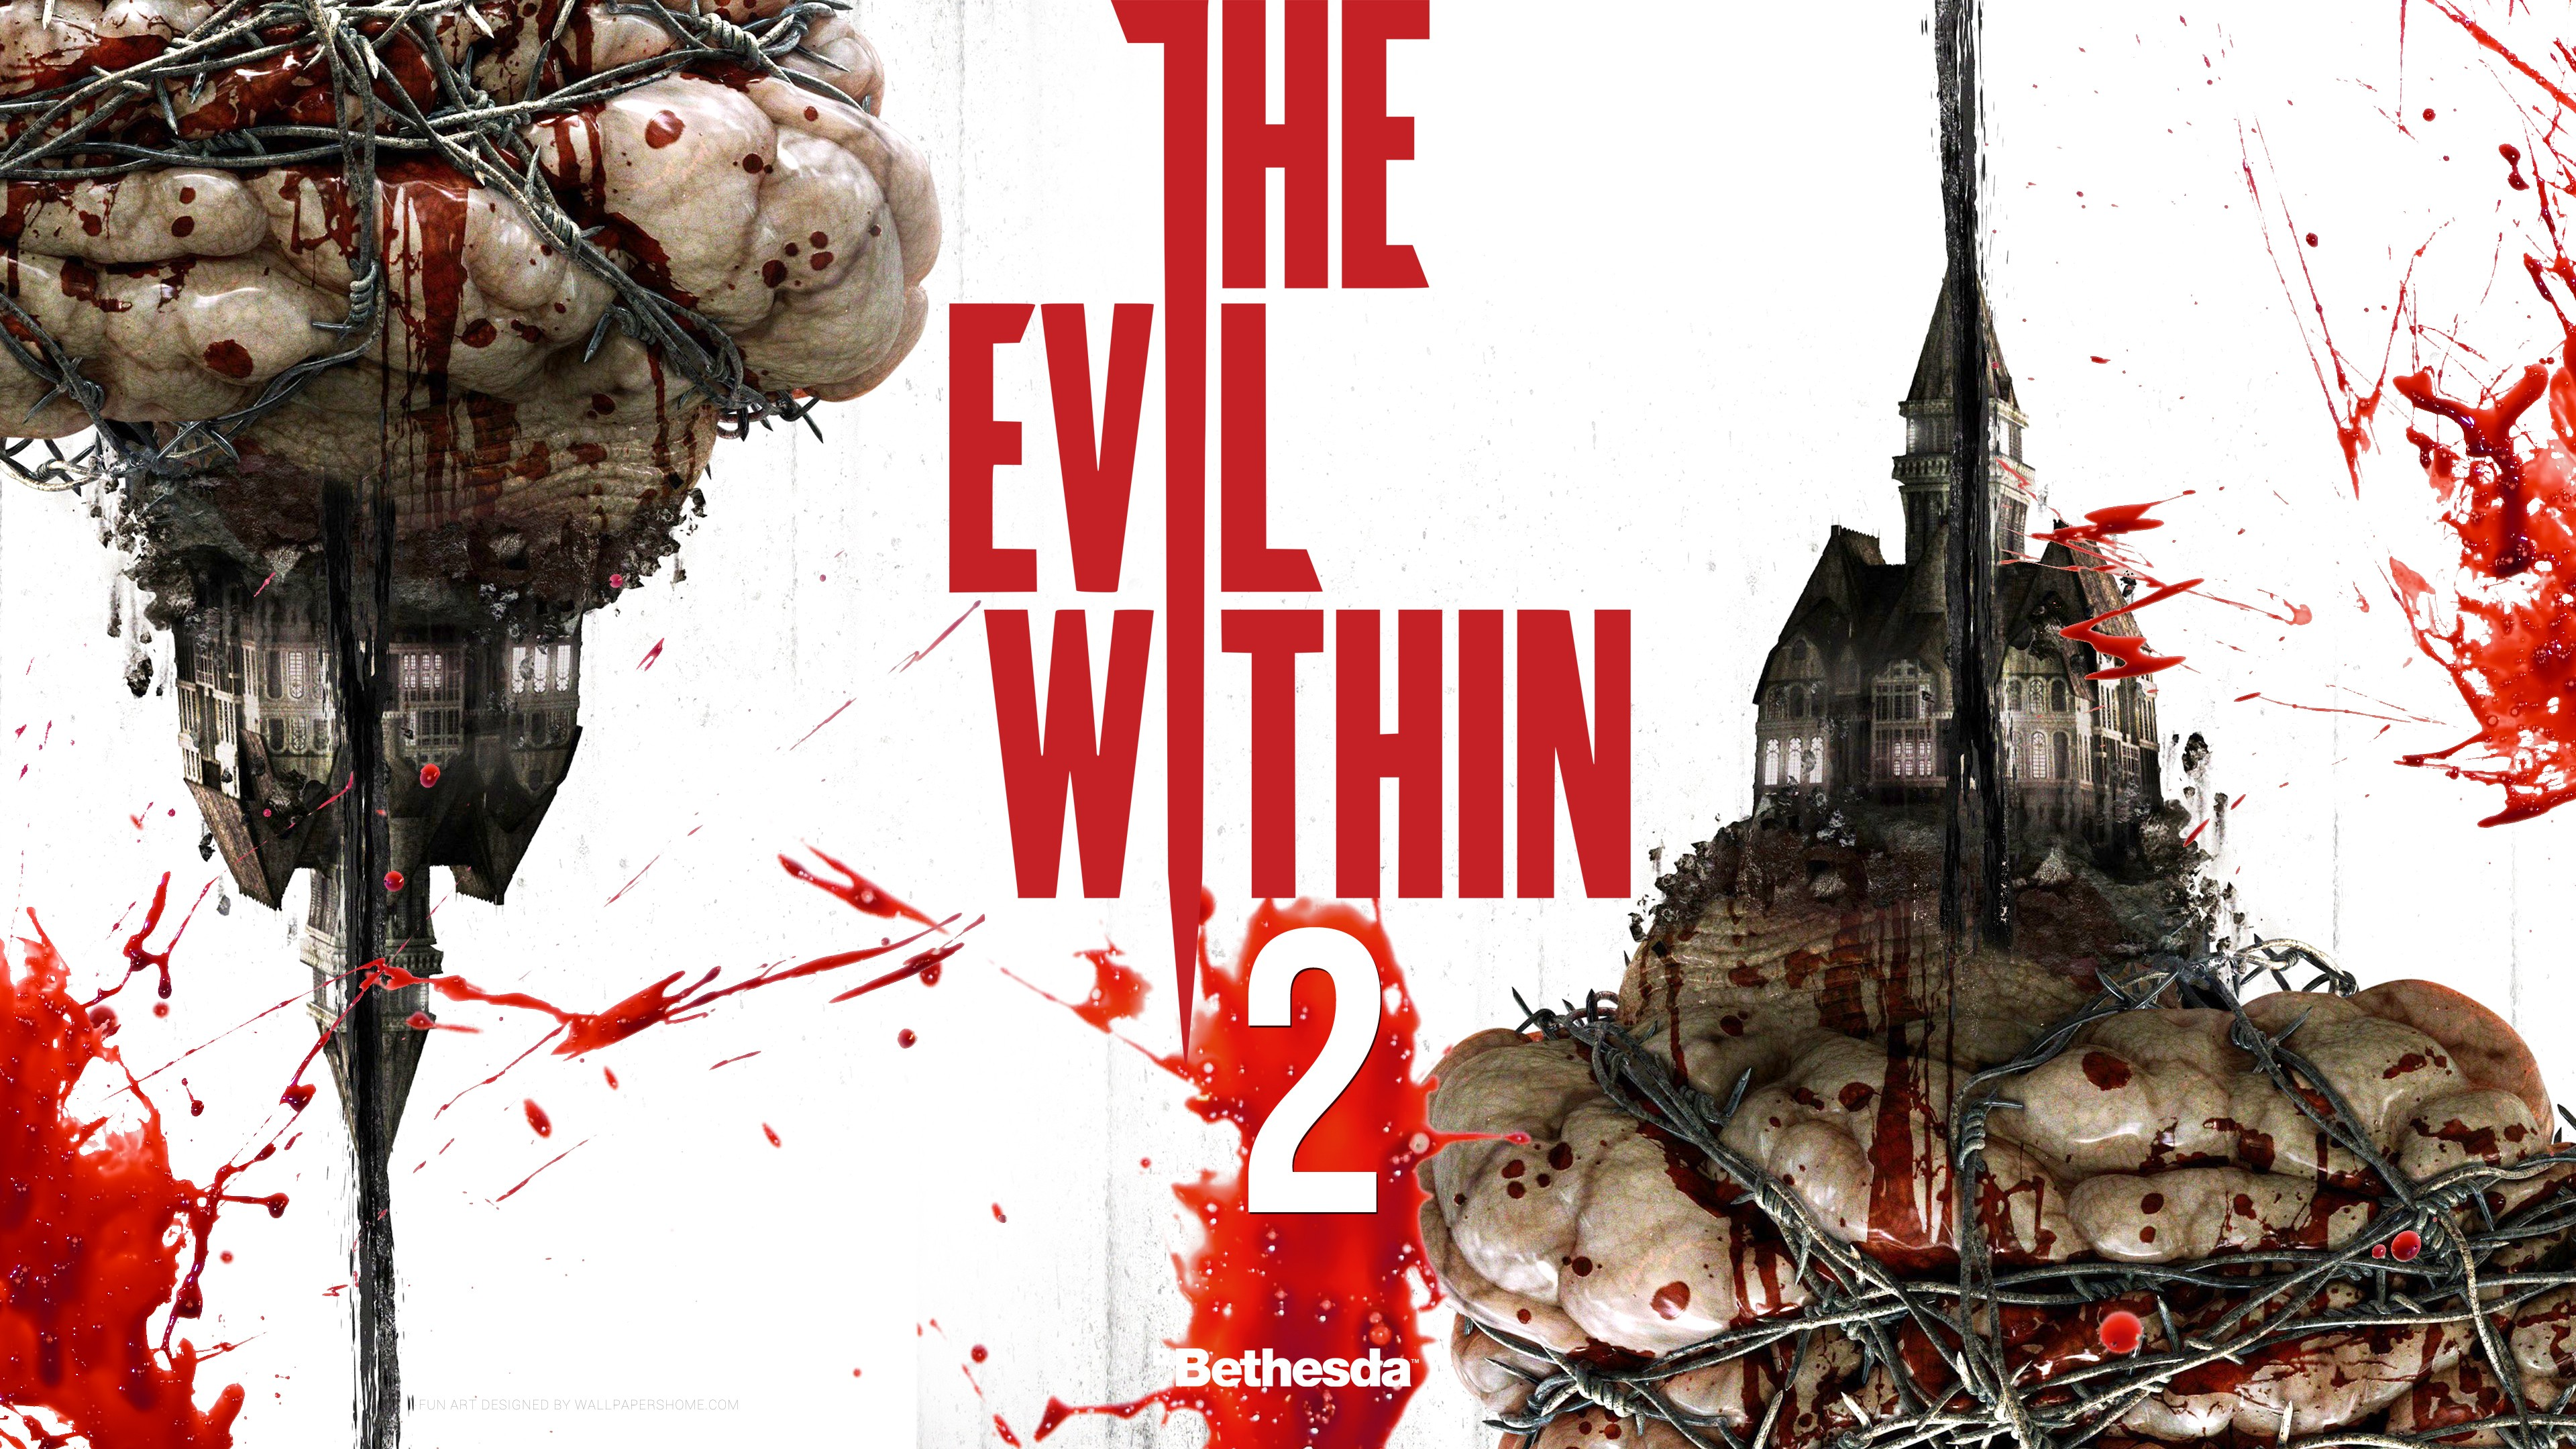 Wallpaper The Evil Within 2 4k Games 12718: Wallpaper The Evil Within 2, 4k, E3 2017, Games #13728